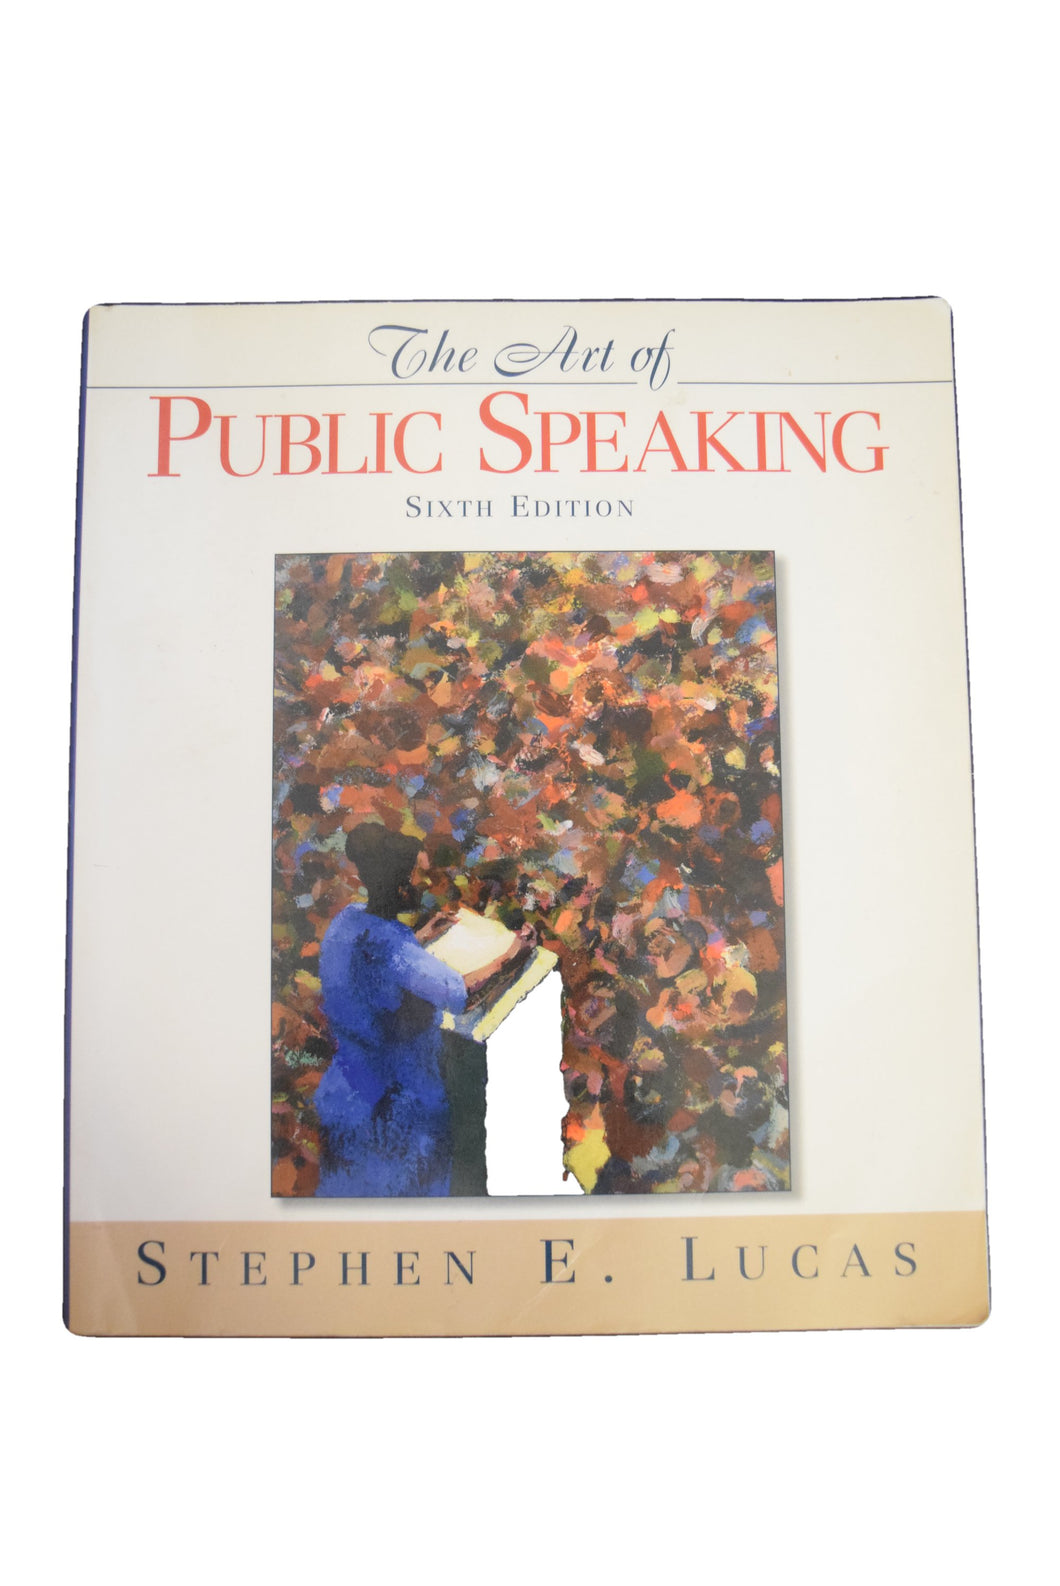 The art of public speaking, 8th edition by stephen e. Lucas.